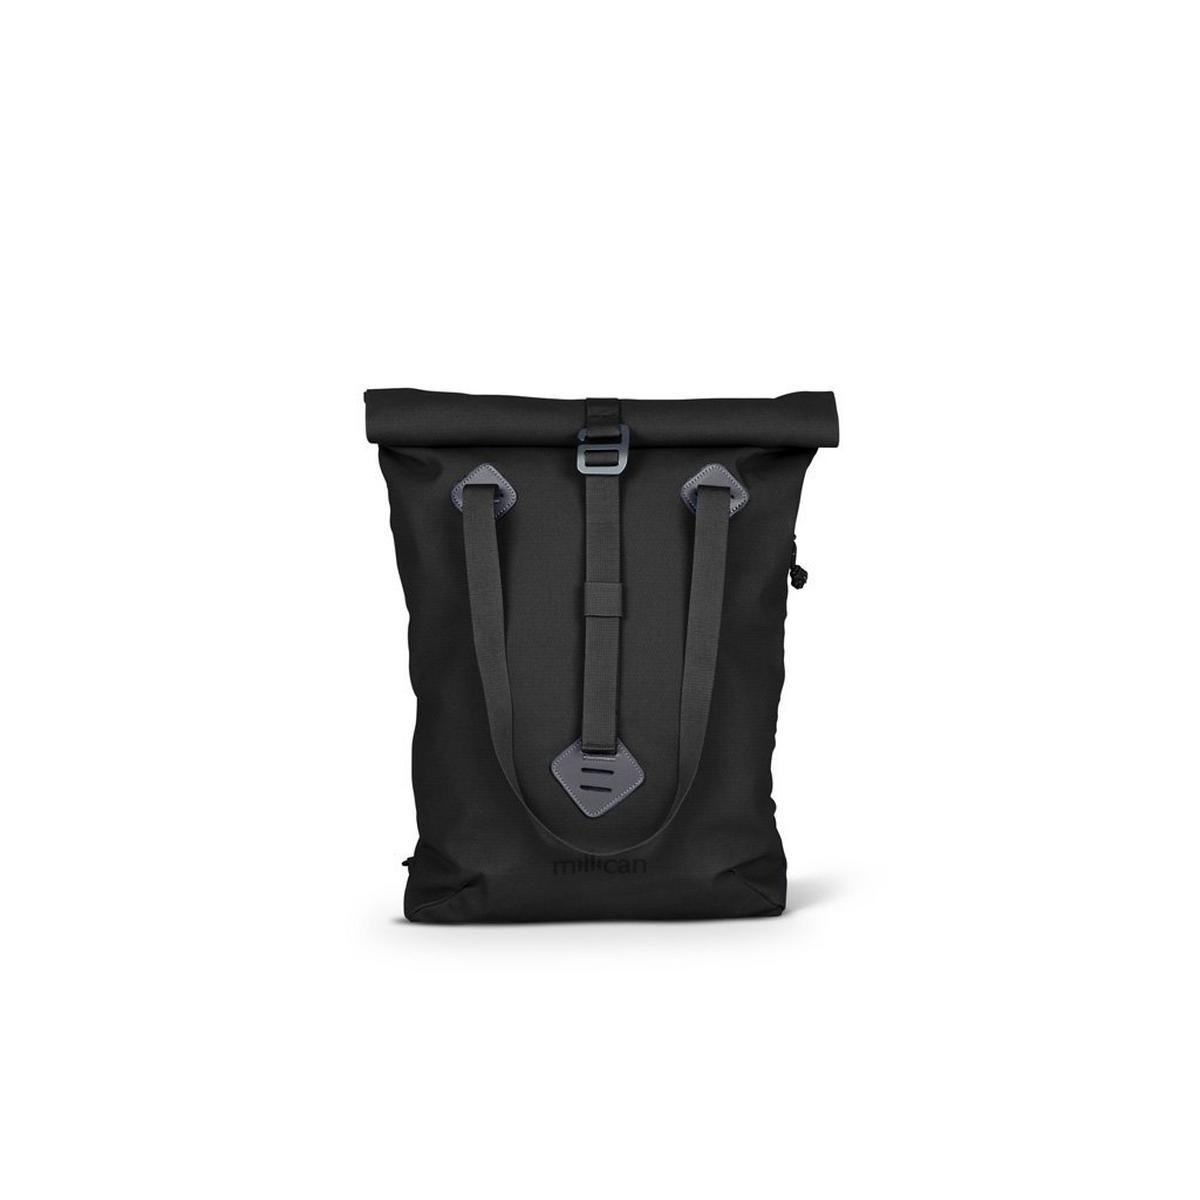 Millican Travel Bag Tinsley the Tote Pack 14L Graphite